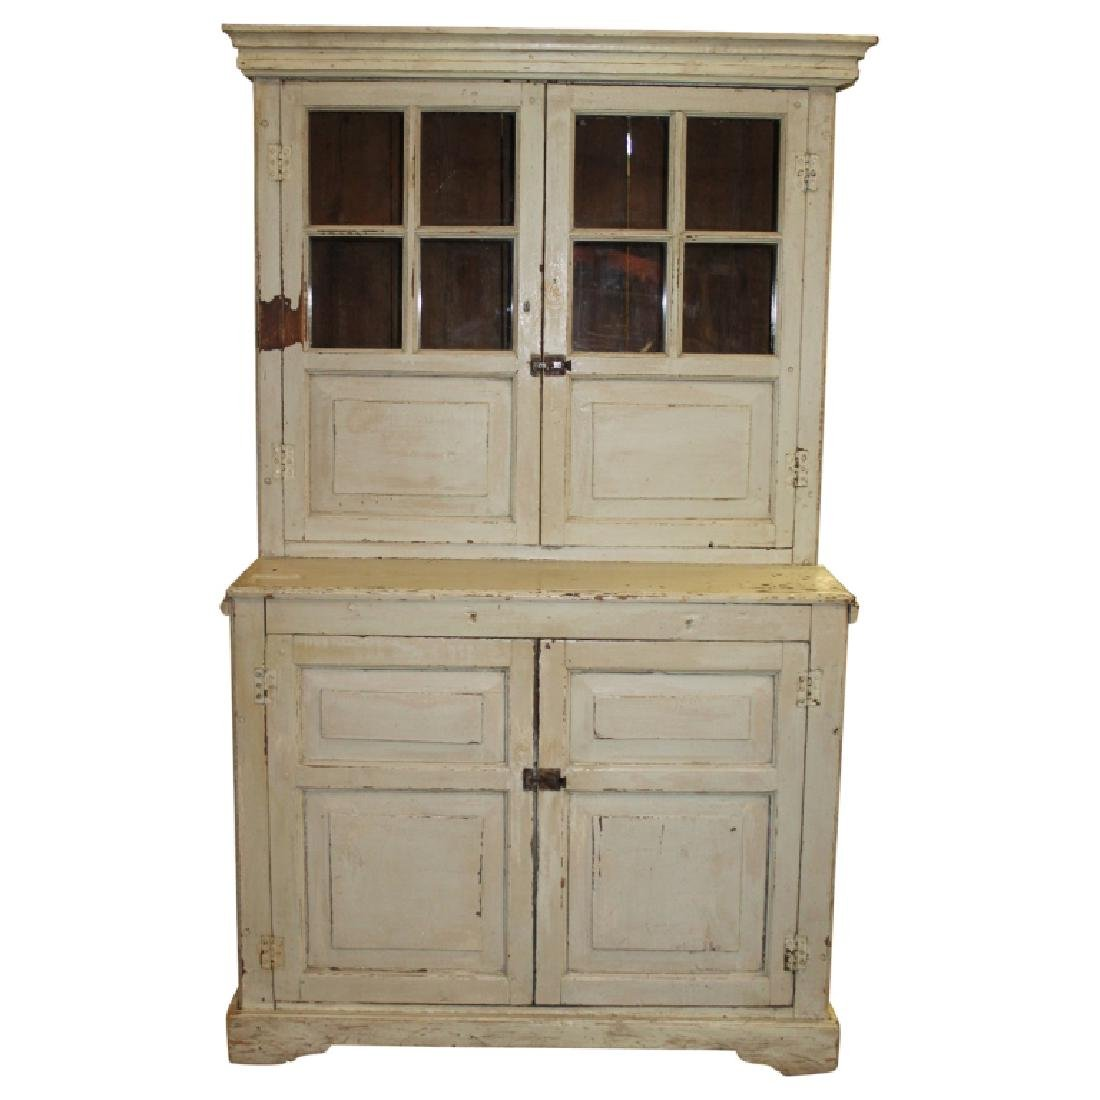 1830s Stepback Cupboard